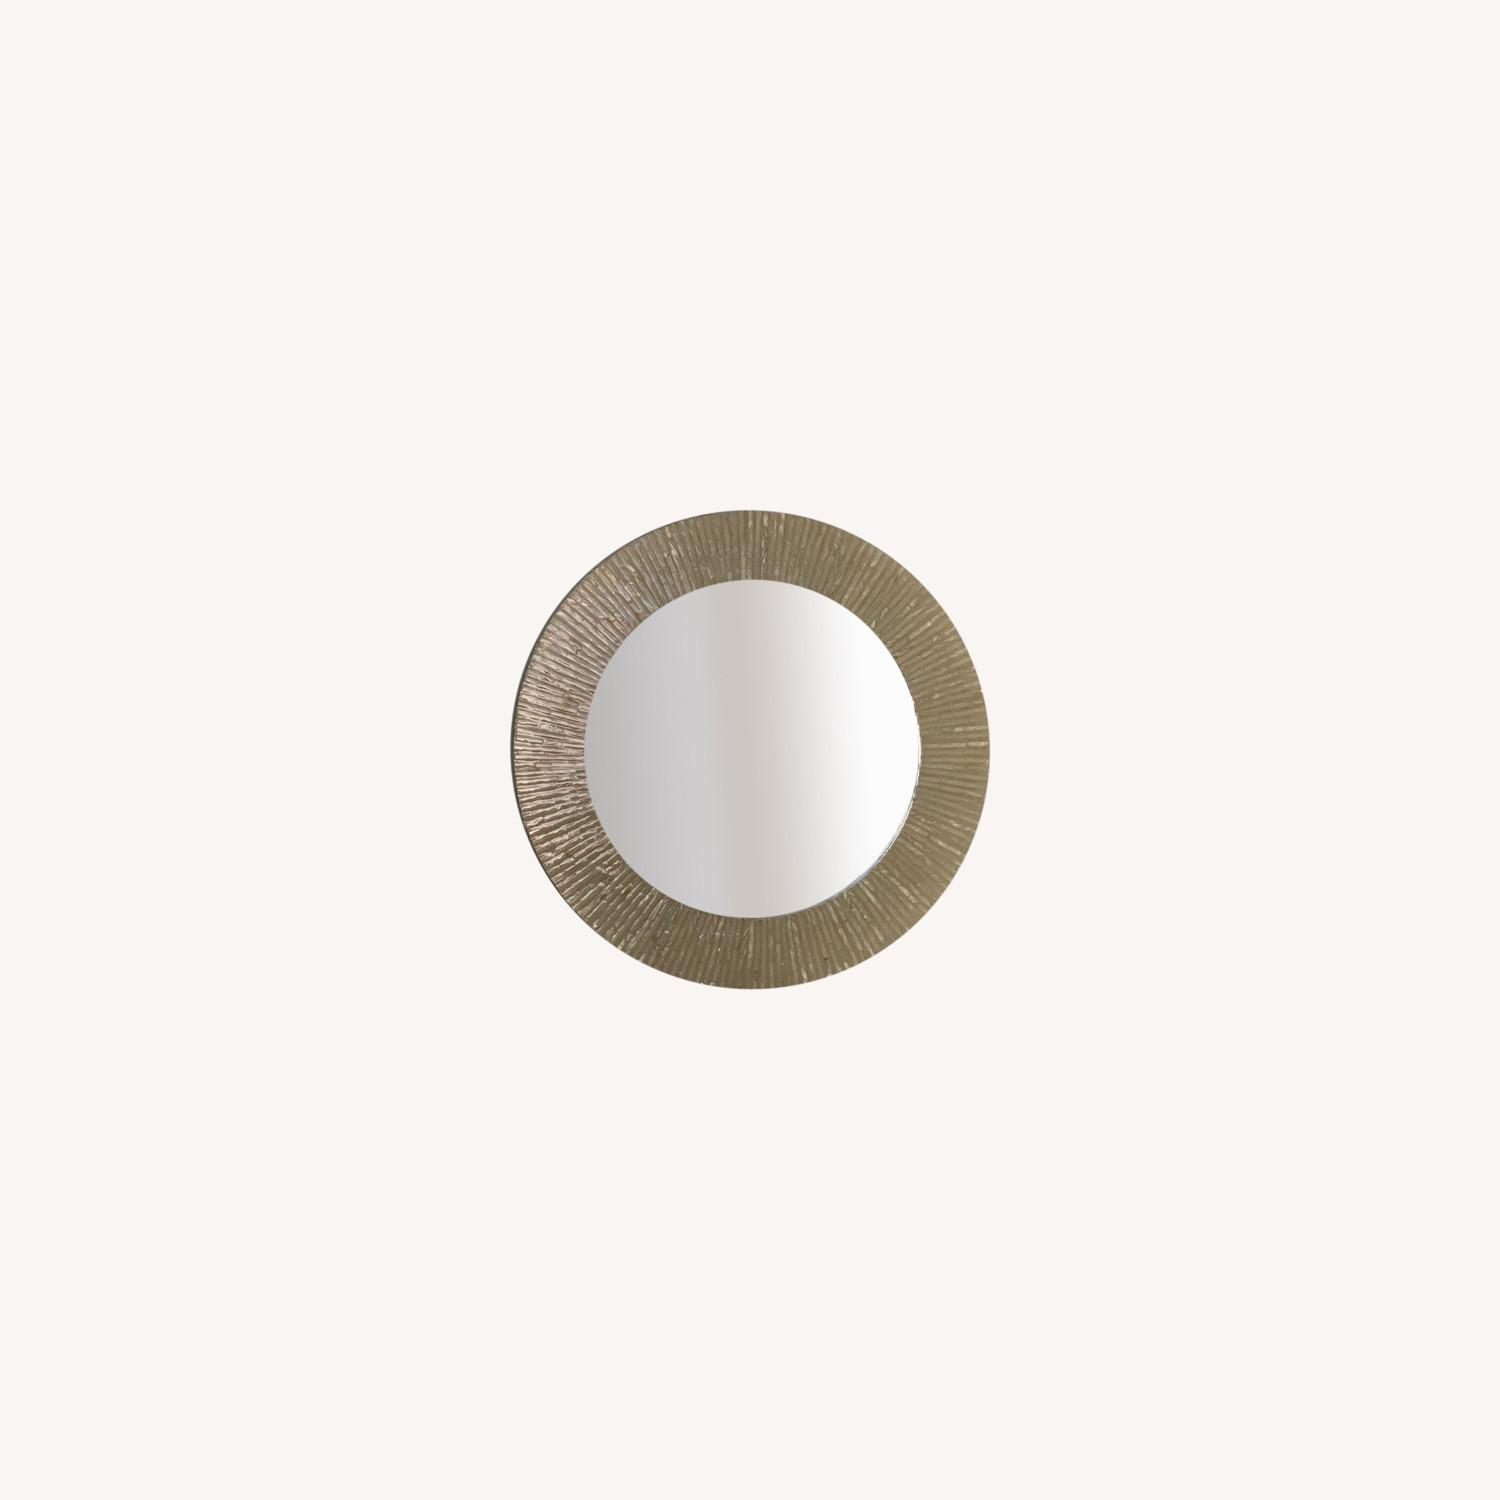 Pier 1 Mother of Pearl Round Mirror - image-0